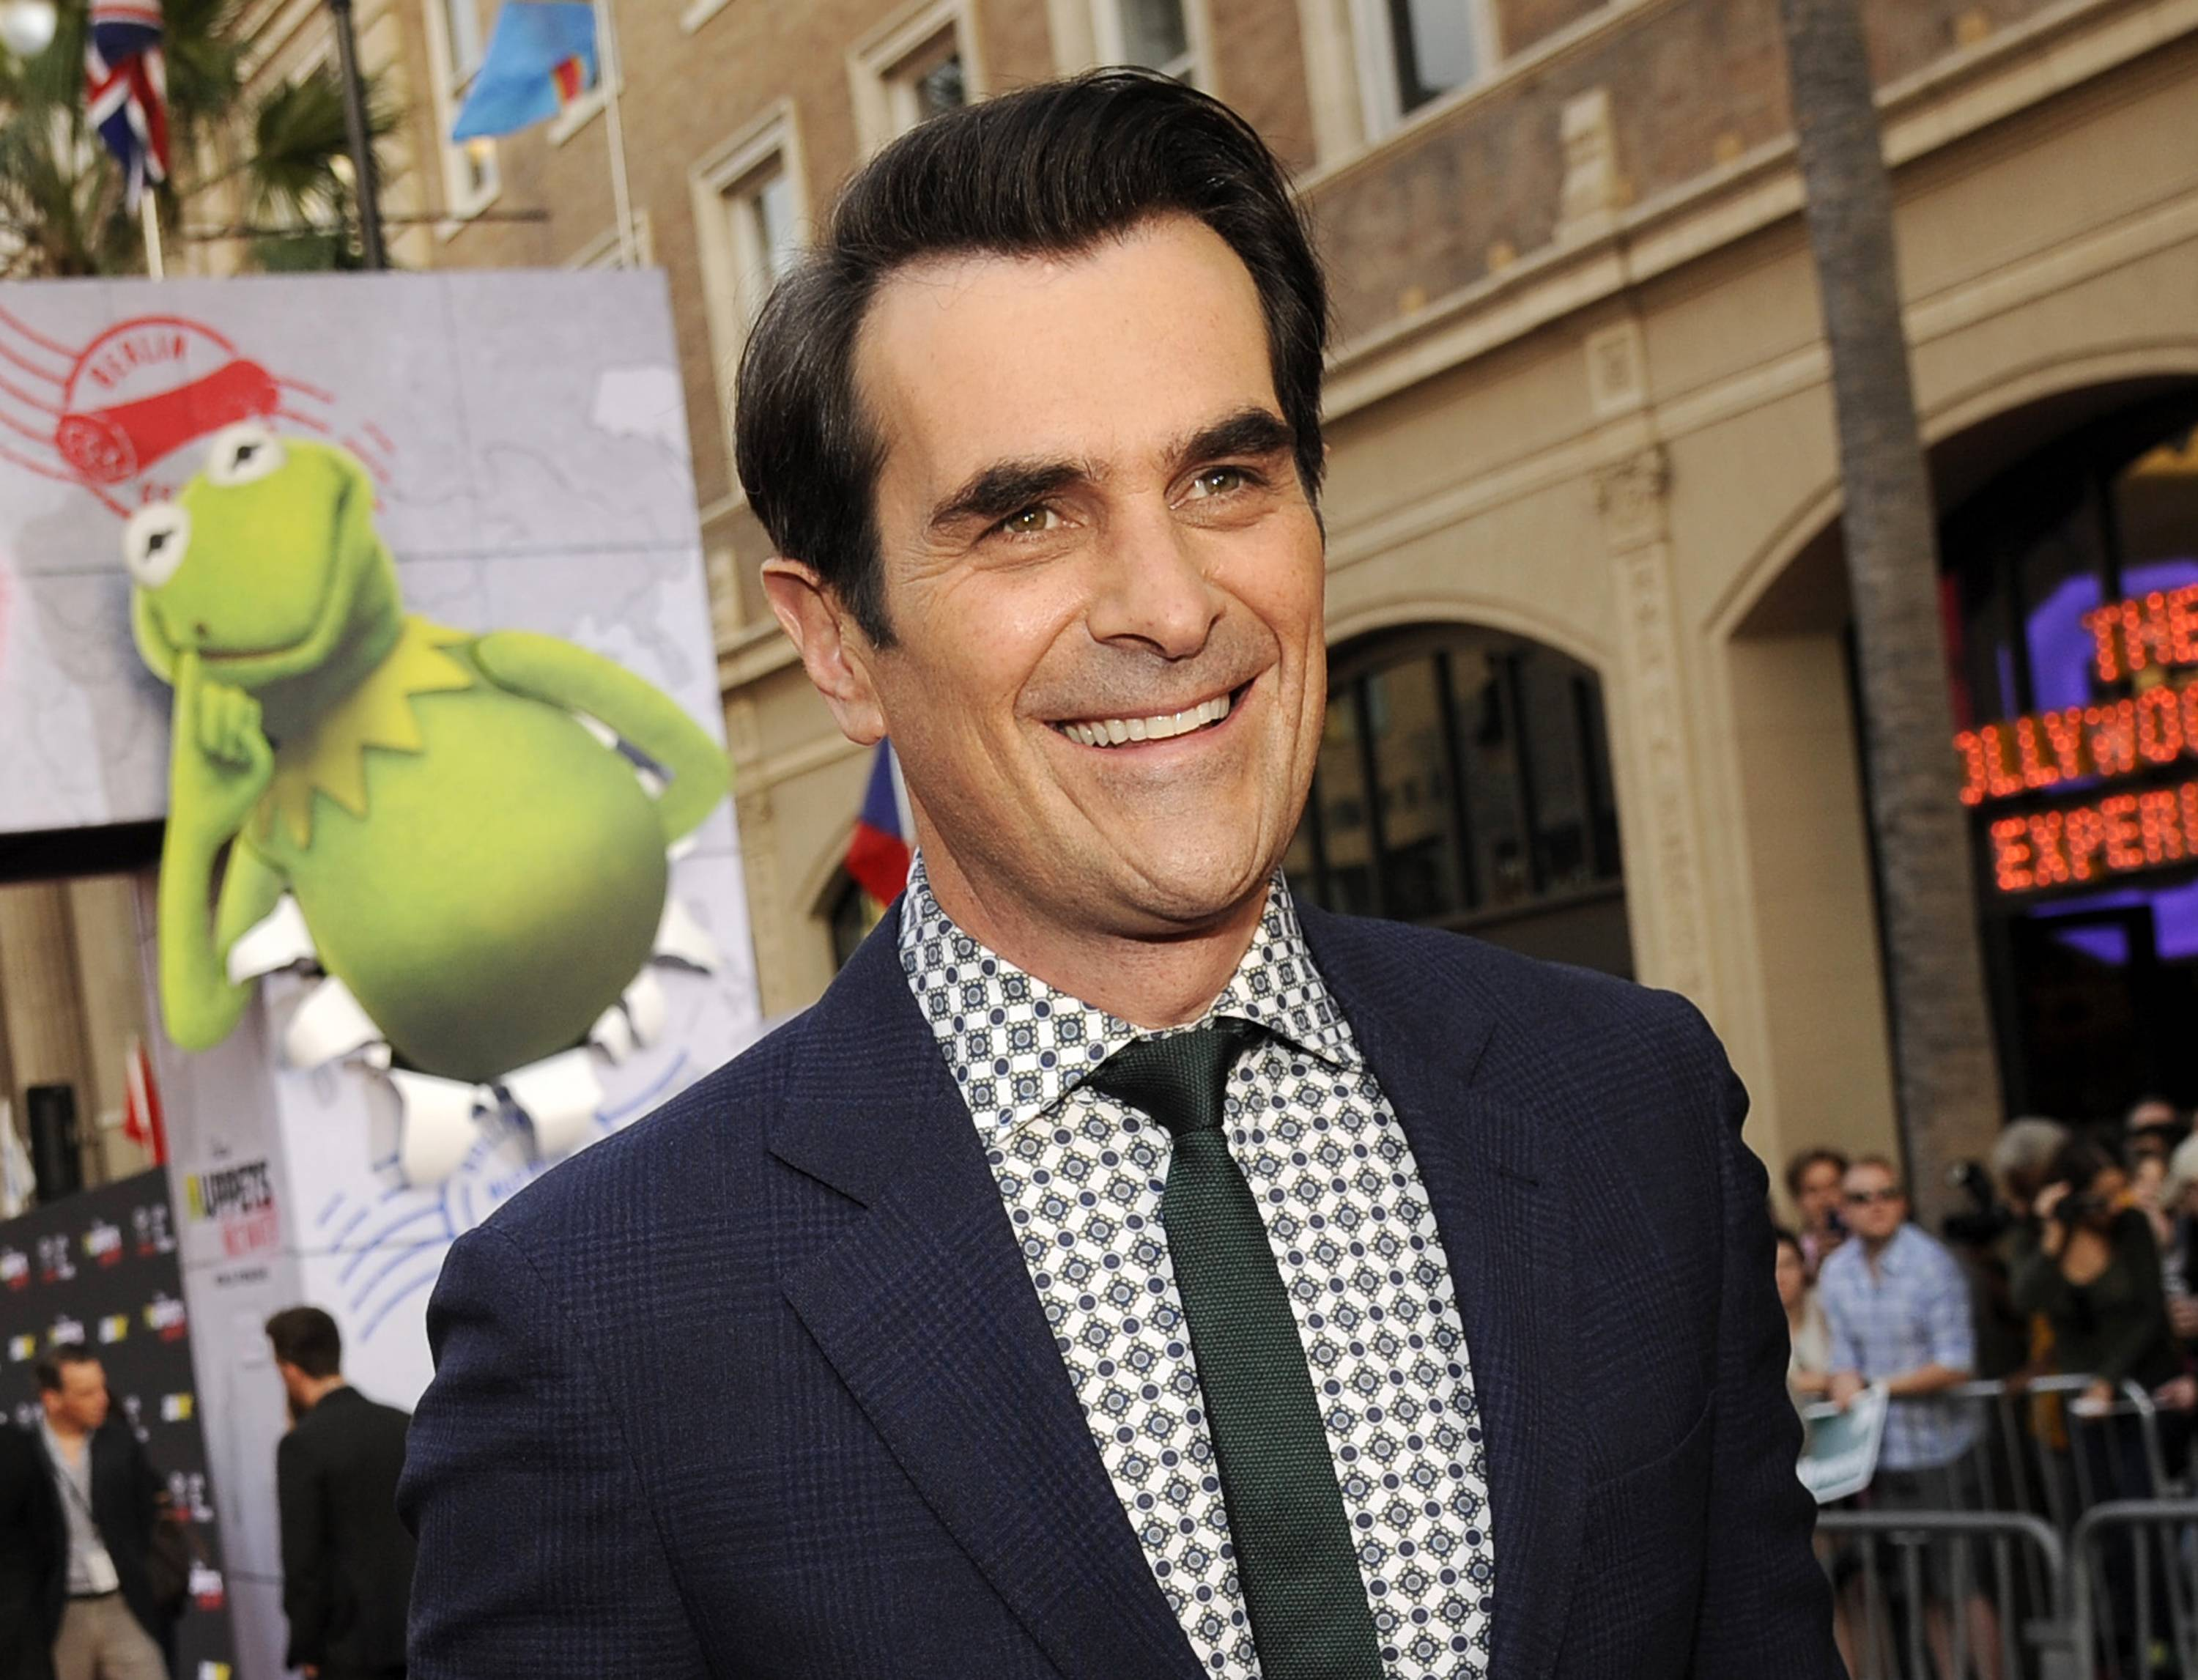 "Actor Ty Burrell, who plays Phil Dunphy on ABC's ""Modern Family"" and is a St. Louis Rams fan, will participate in the first round of the NFL draft with the team. His main duty will be to hand the team jersey to NFL Commissioner Roger Goodell for the team's 13th pick."